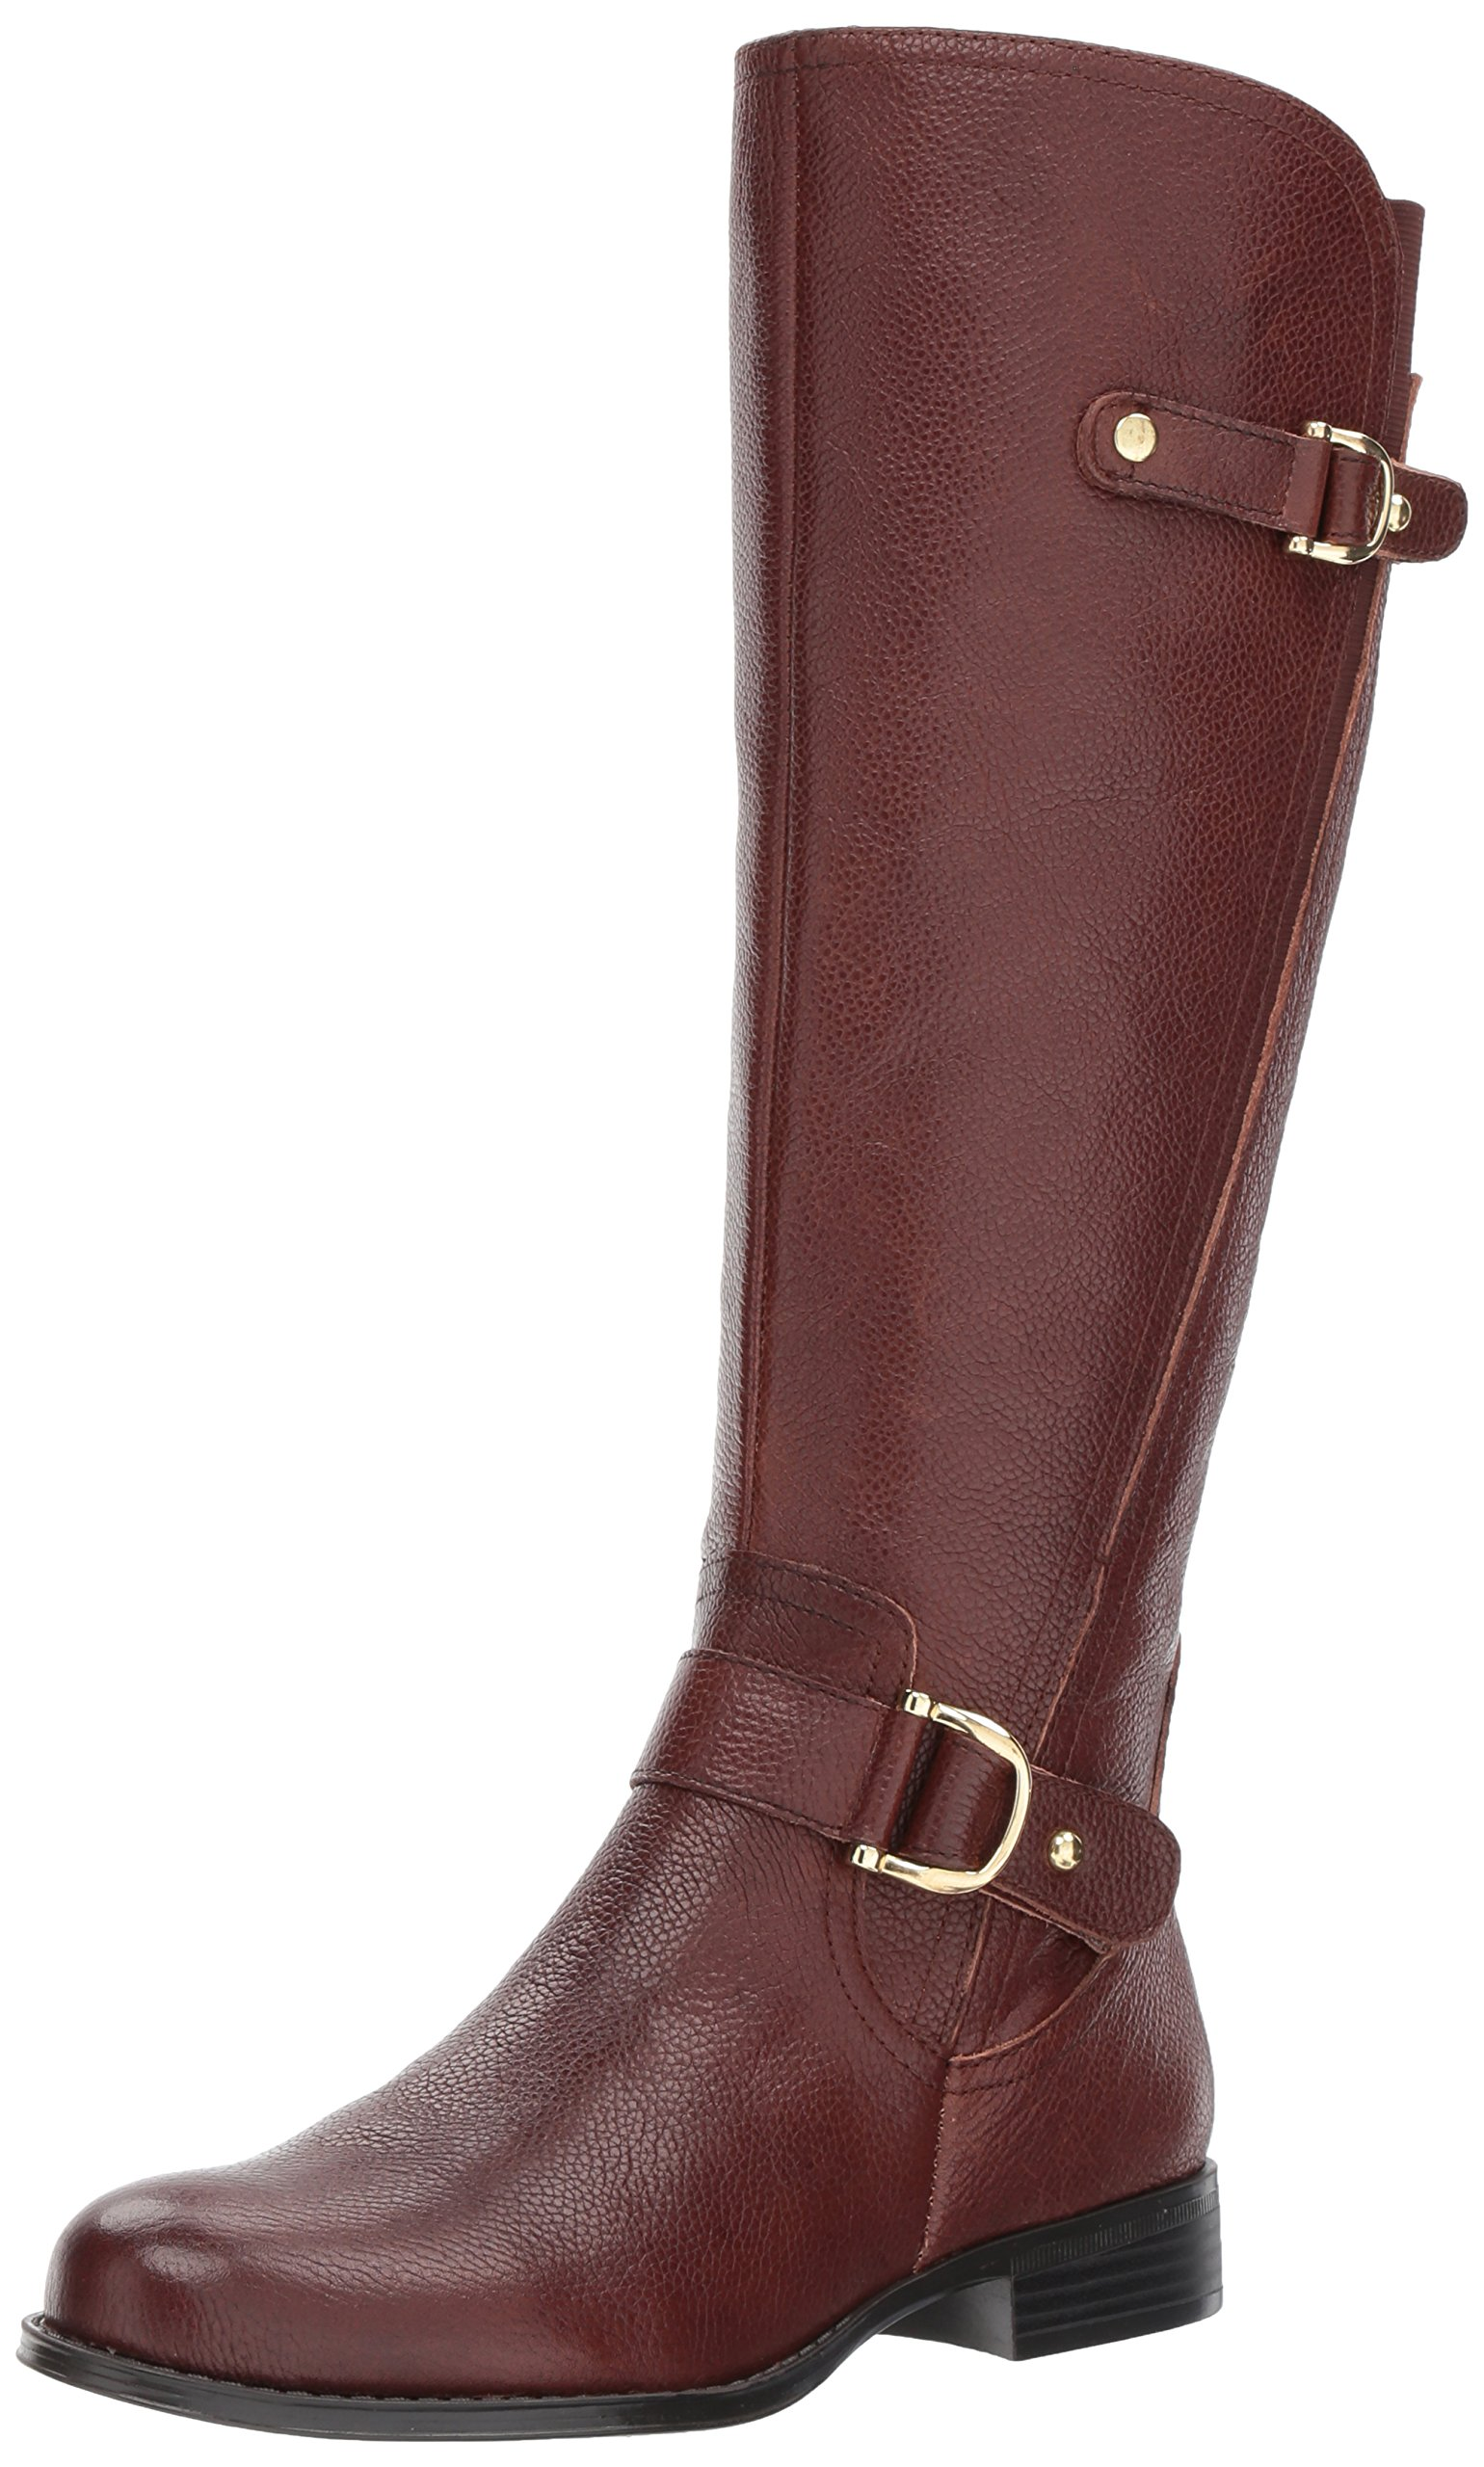 Naturalizer Women's Jenelle Riding Boot, Brown, 8.5 W US